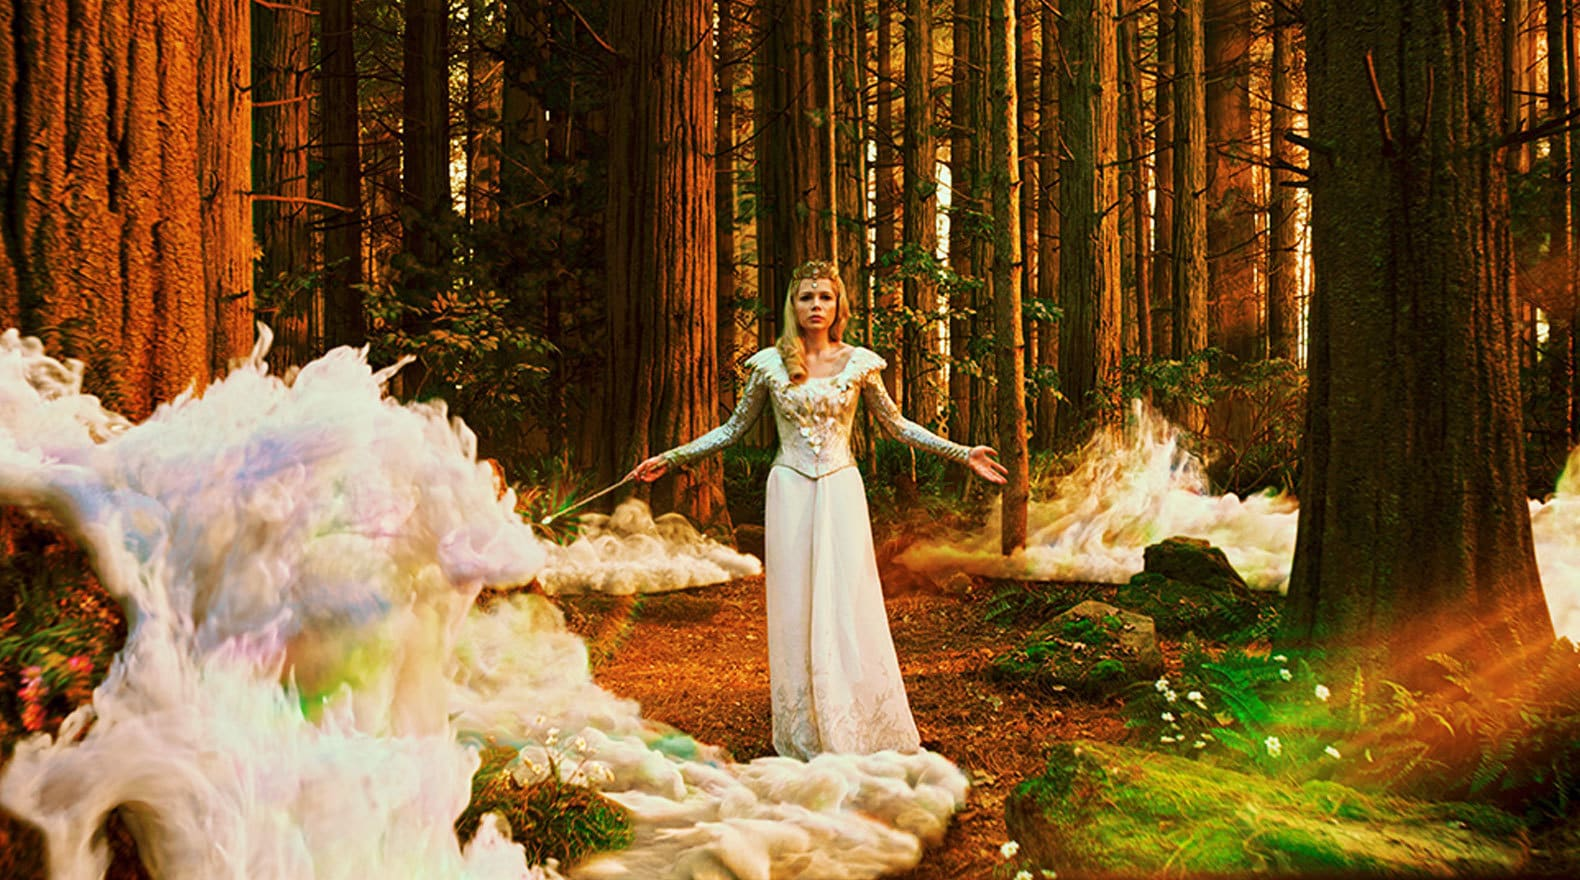 """Glinda the Good standing in the woods from the movie """"Oz the Great and Powerful"""""""